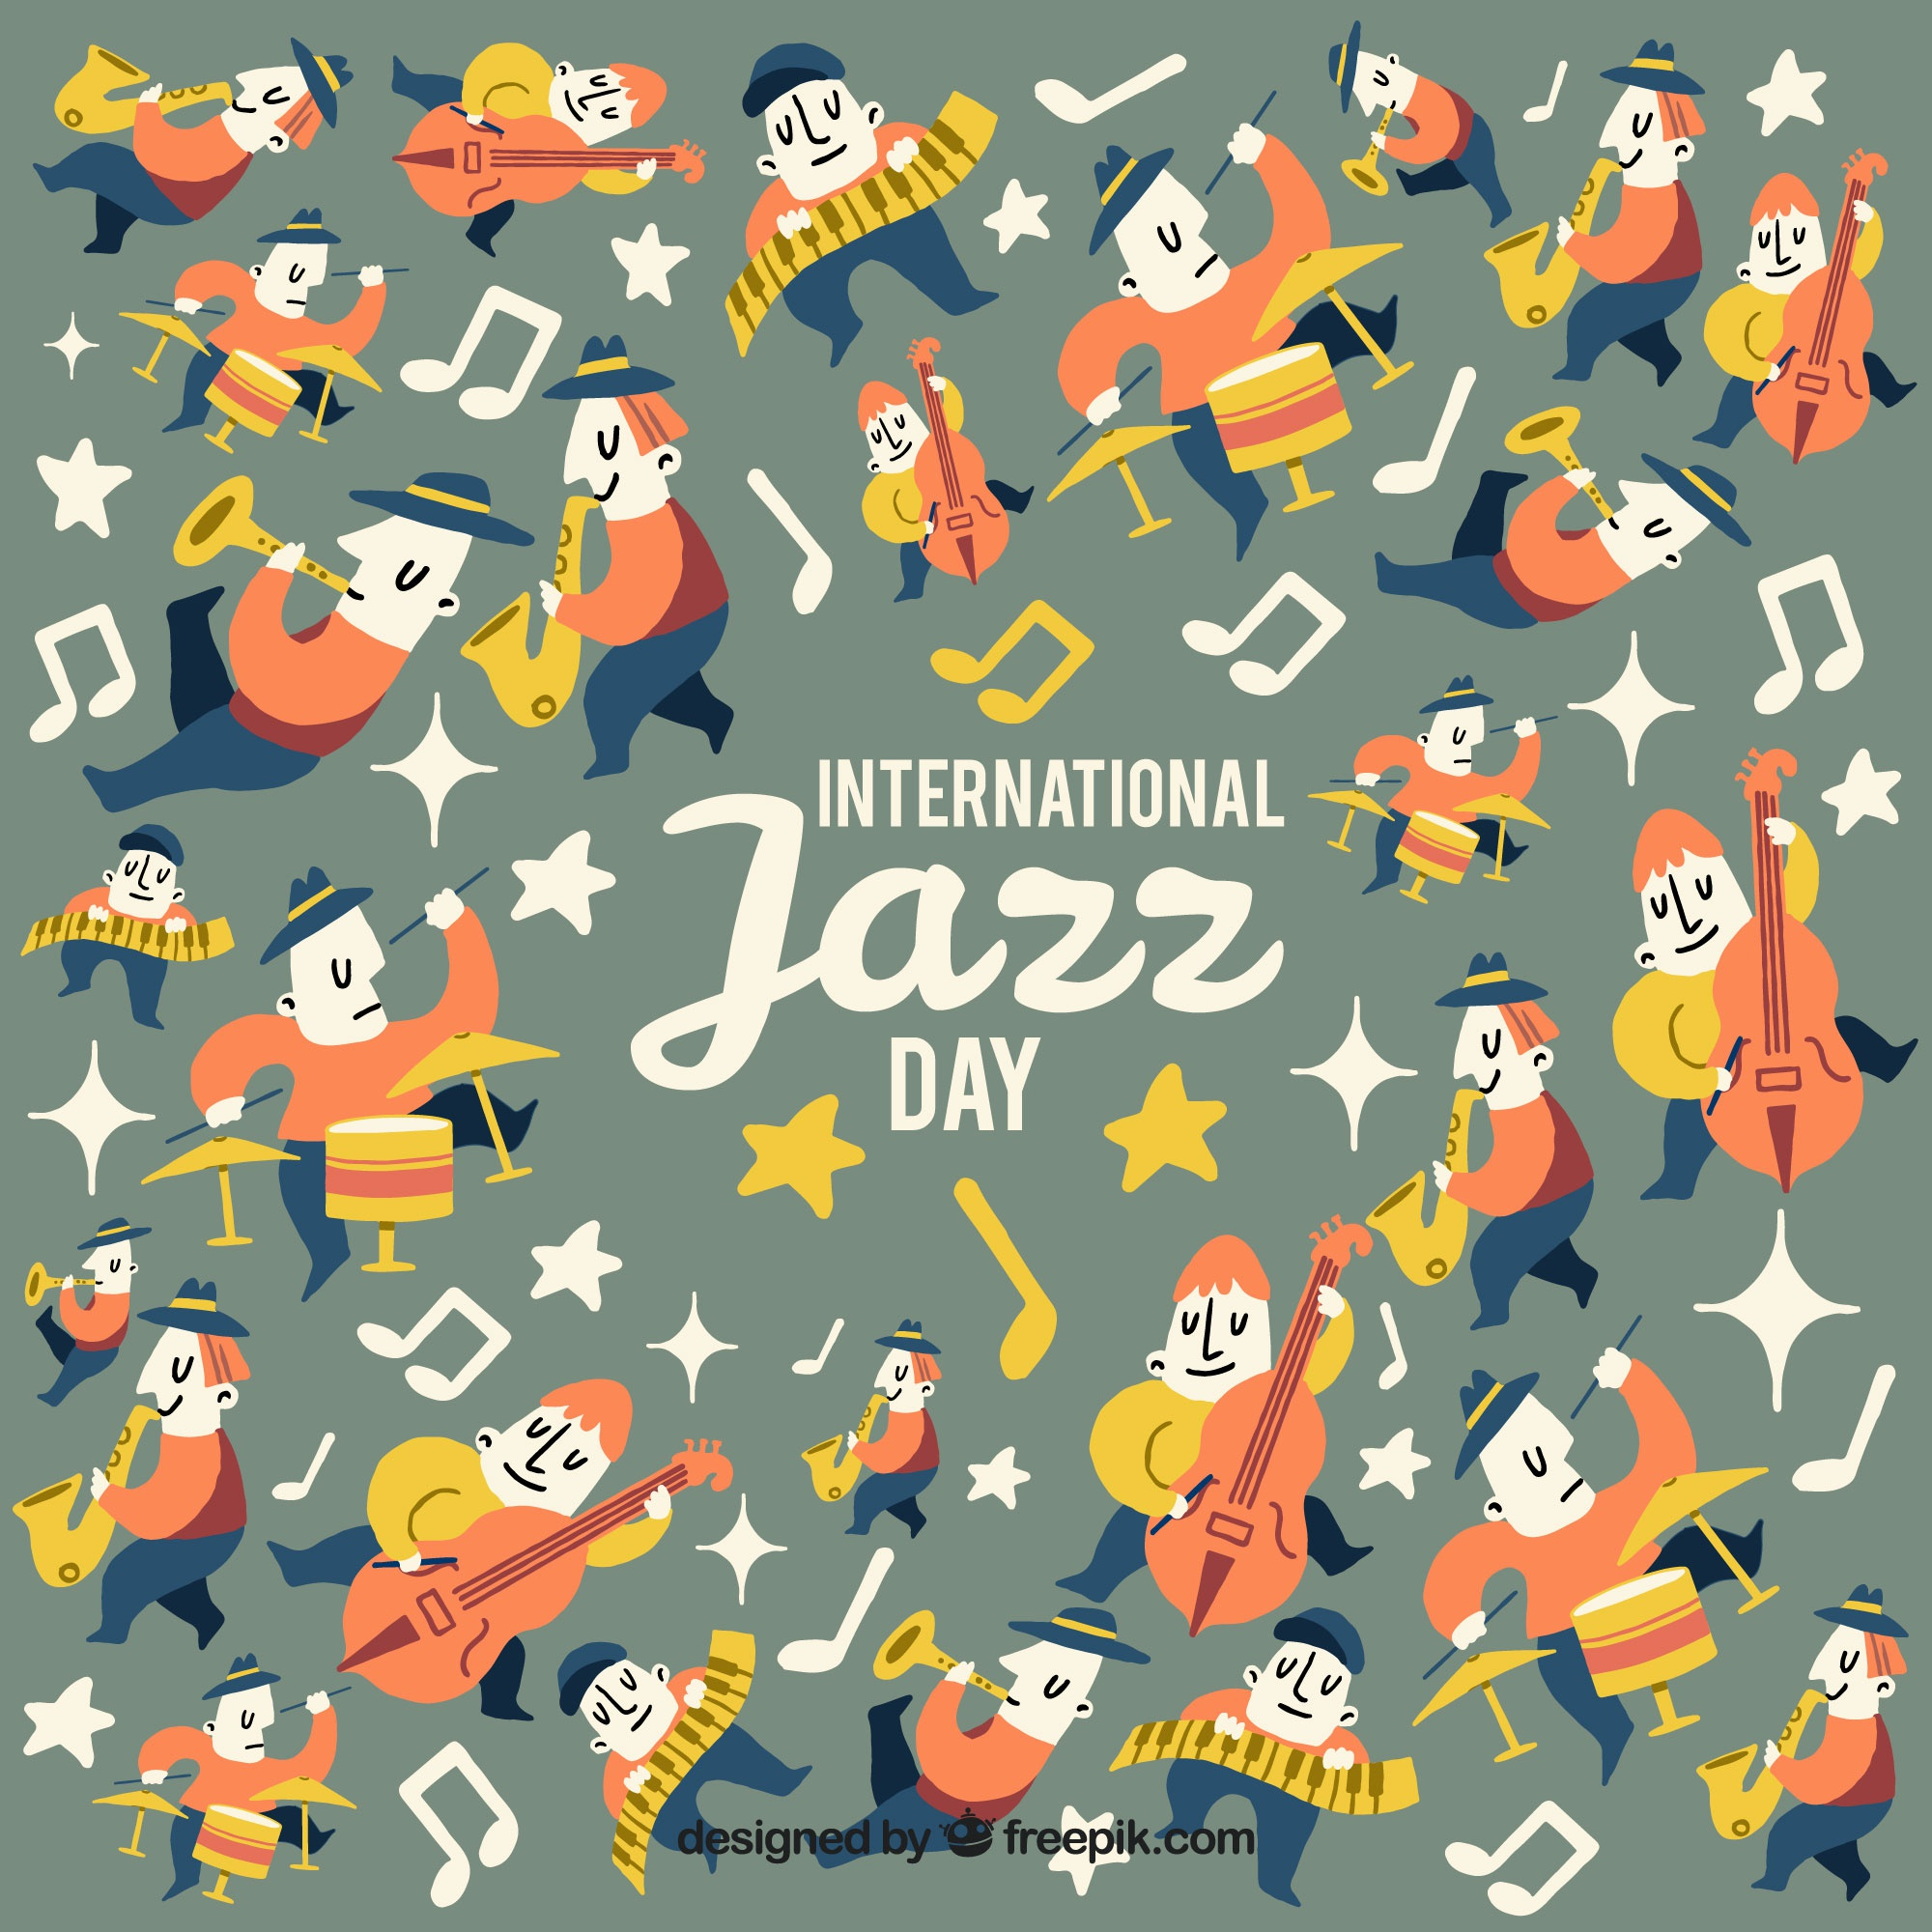 Vintage background of characters and jazz music